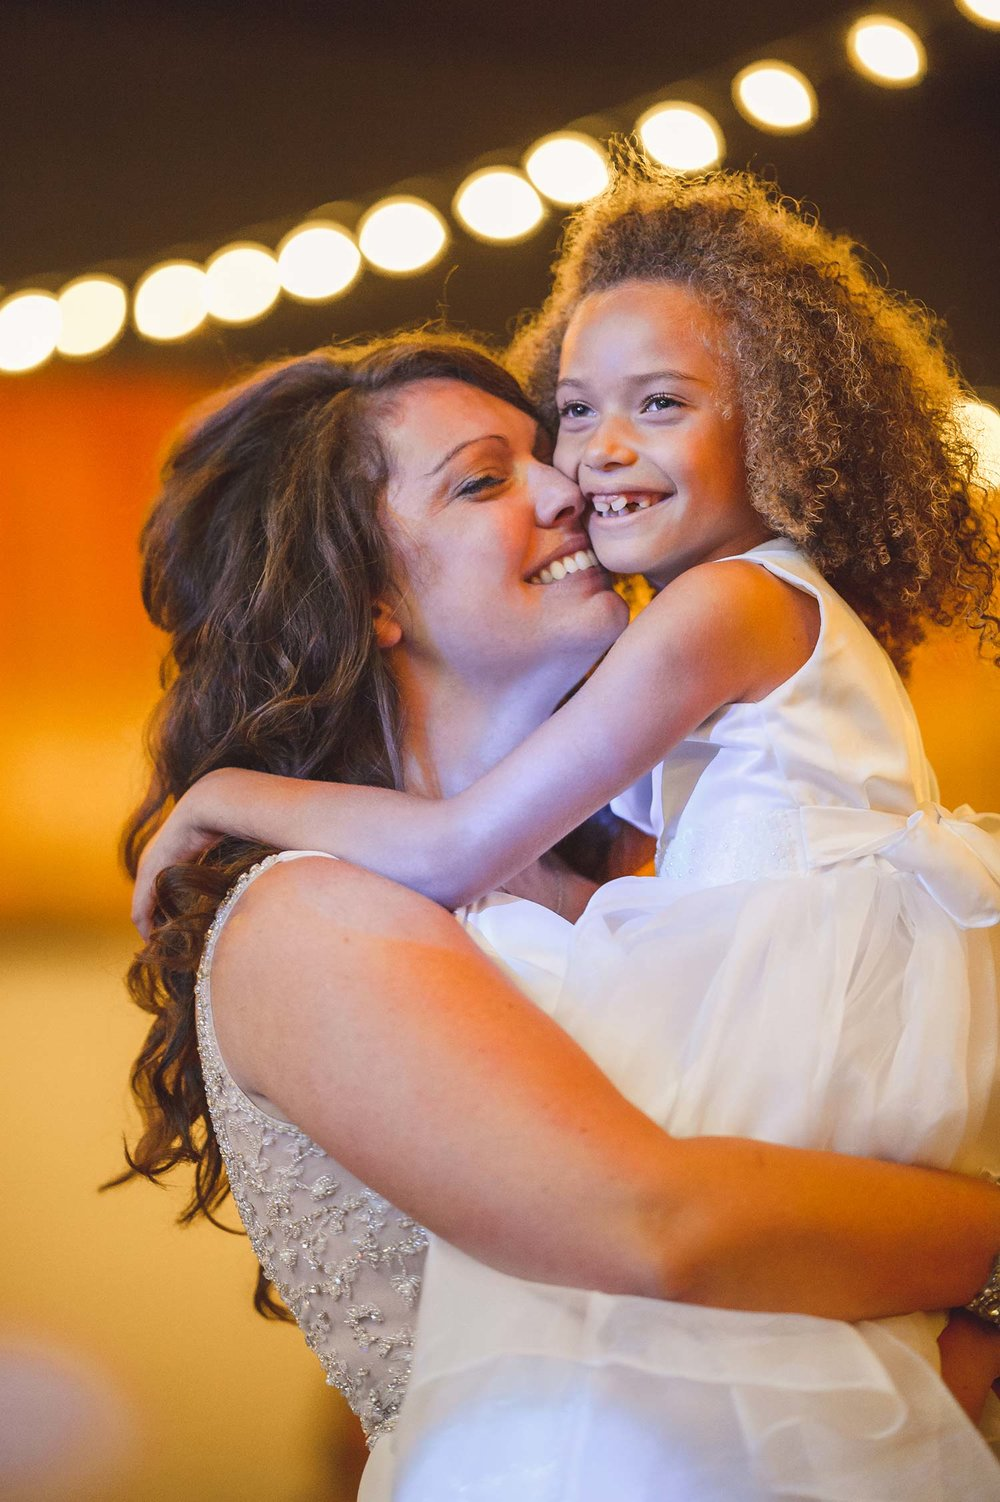 mother-daughter-dance-wedding-reception.jpg